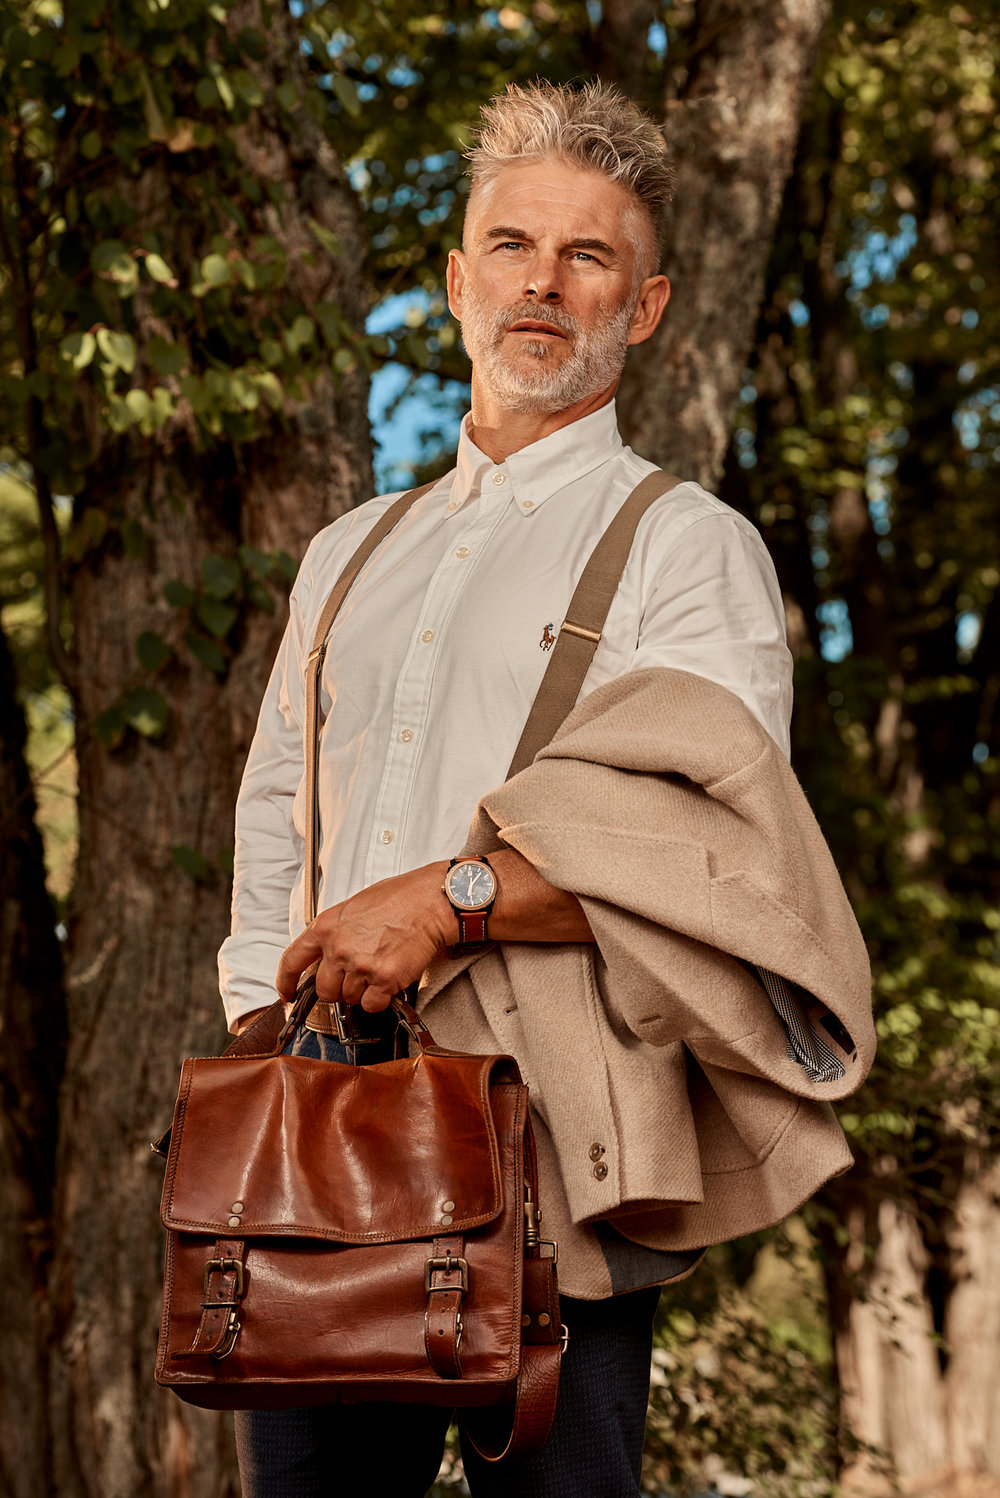 Suspenders: Ralph Lauren - White Dress Shirt: Ralph Lauren - Blue Chino Pant: Ted Baker -  Leather Band Watch: Fossil - Pocket Square: Moschino - Wool Coat: Black Brown 1826 - Brown Leather Boot: A.S. 98 - Brown Leather Satchel: